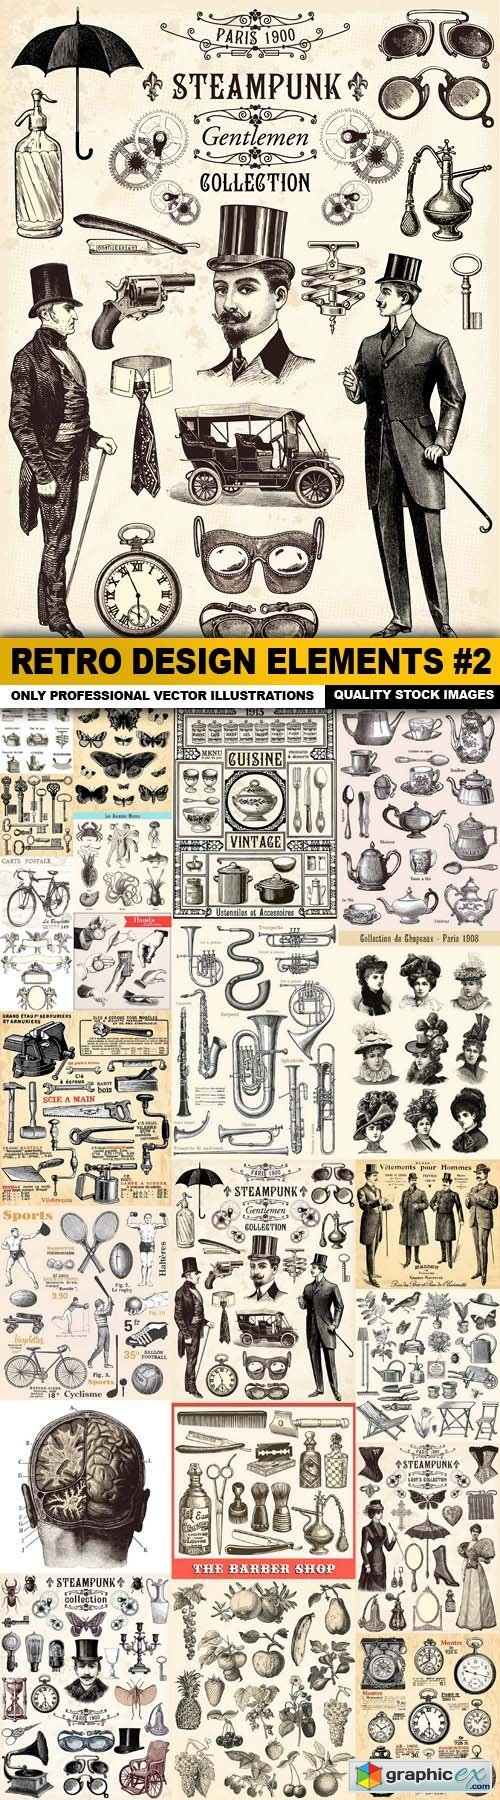 Retro Design Elements #2